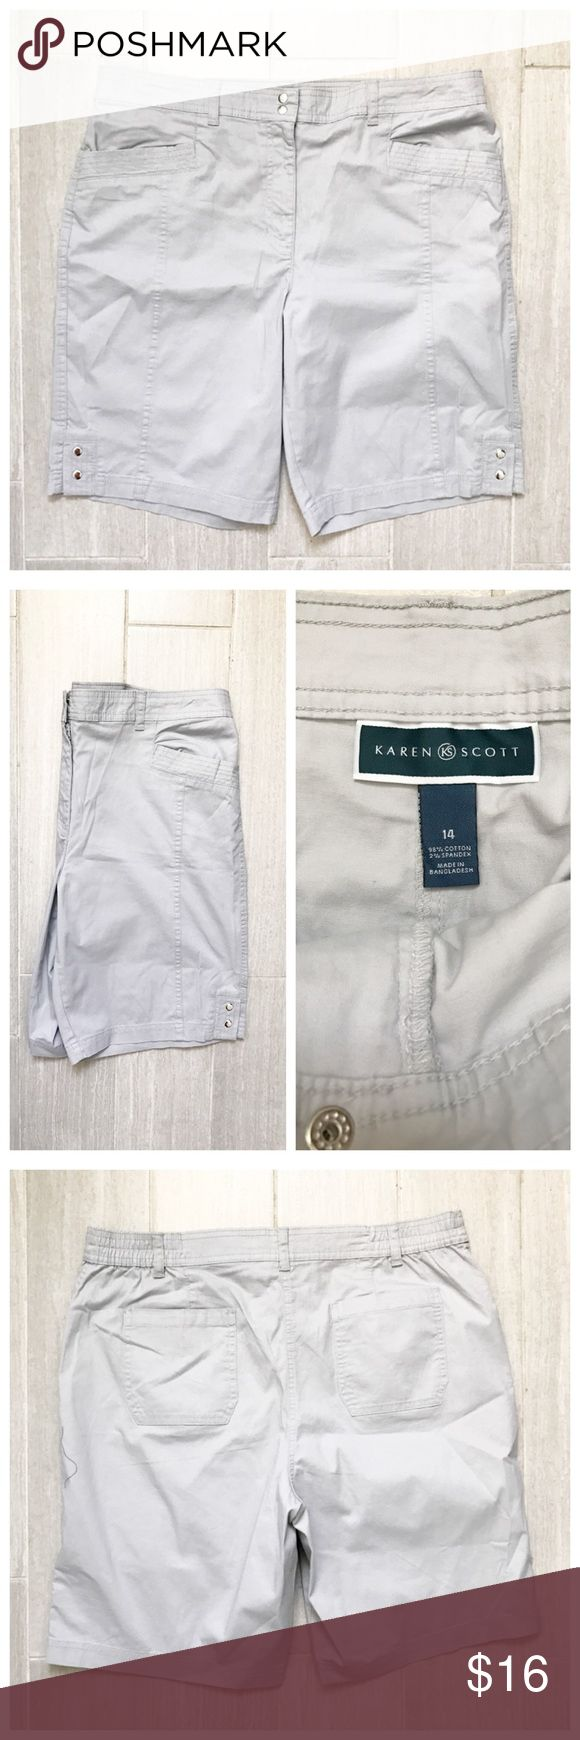 Light Gray Shorts Very pale grey shorts. Pockets. Karen Scott. BUNDLES 20% OFF 🎉 Karen Scott Shorts